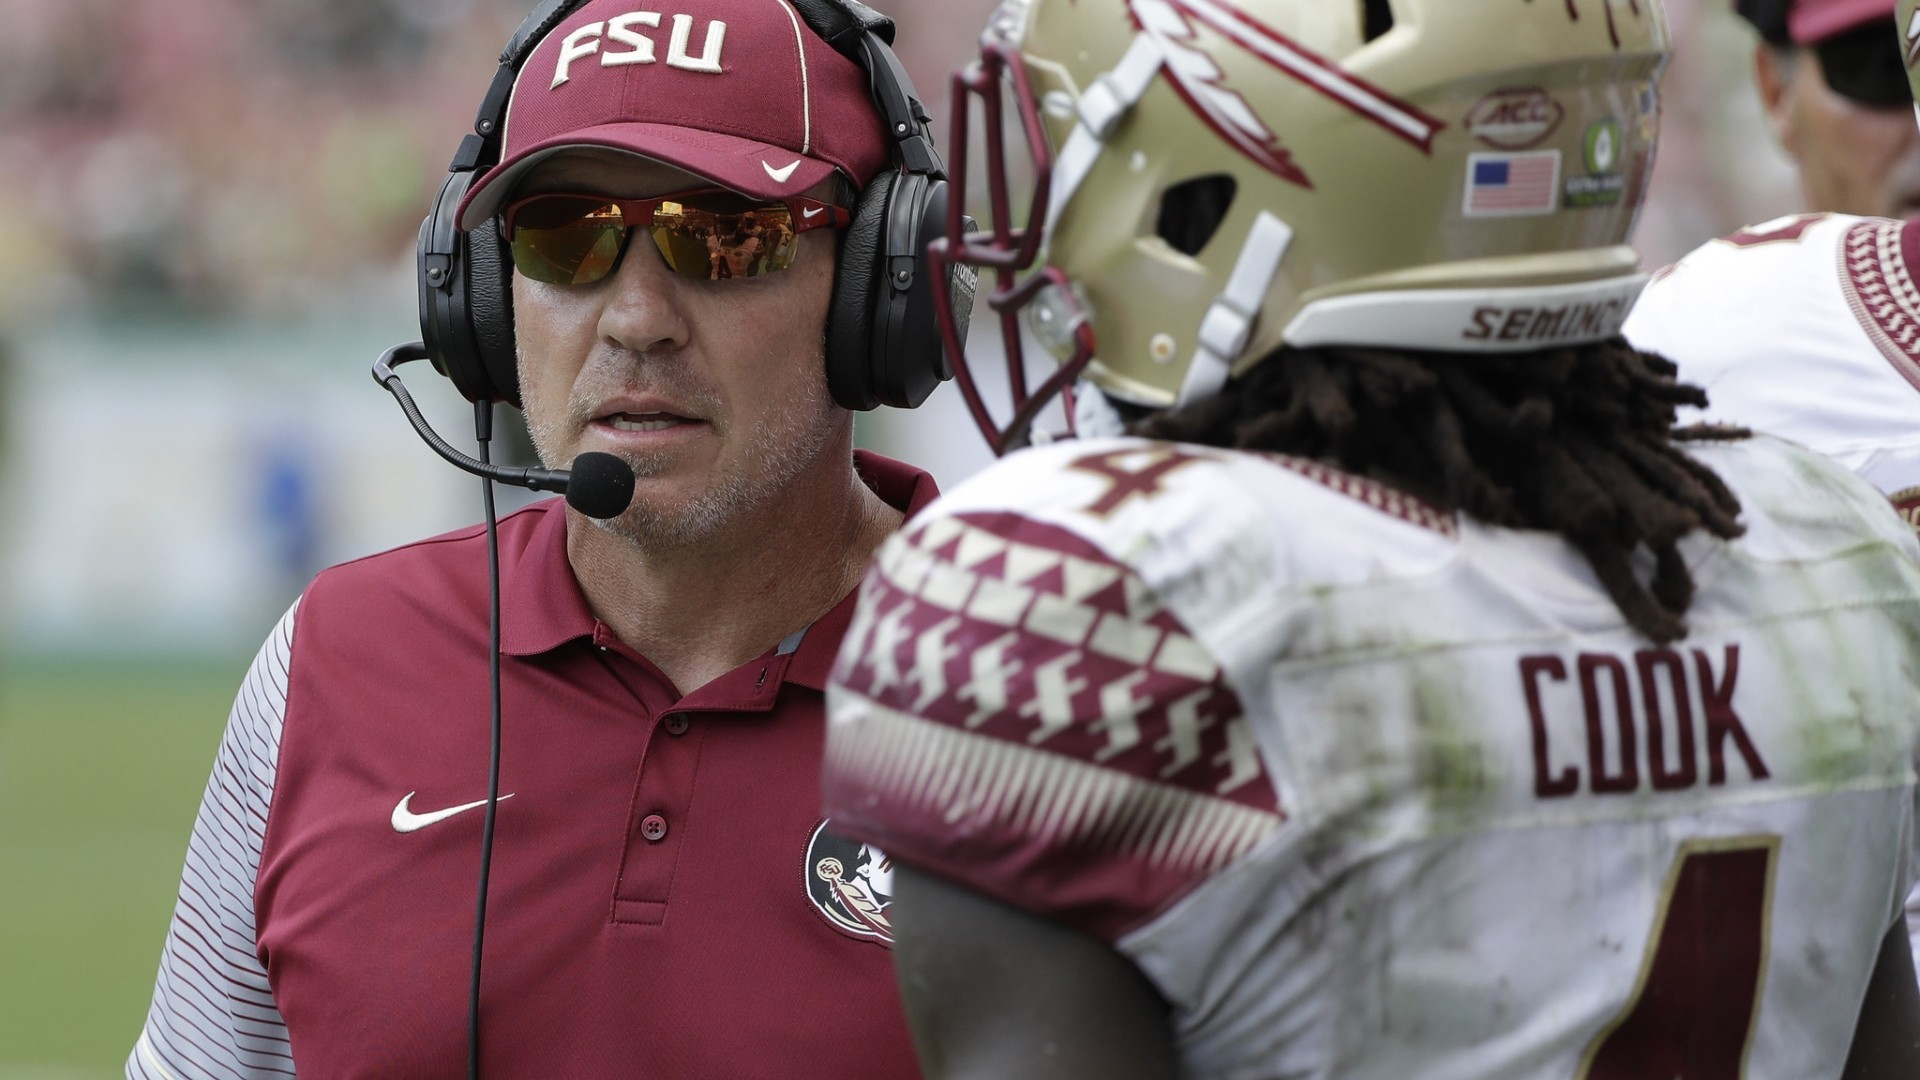 Os-jimbo-fisher-denies-comment-on-open-lsu-vacancy-20160926